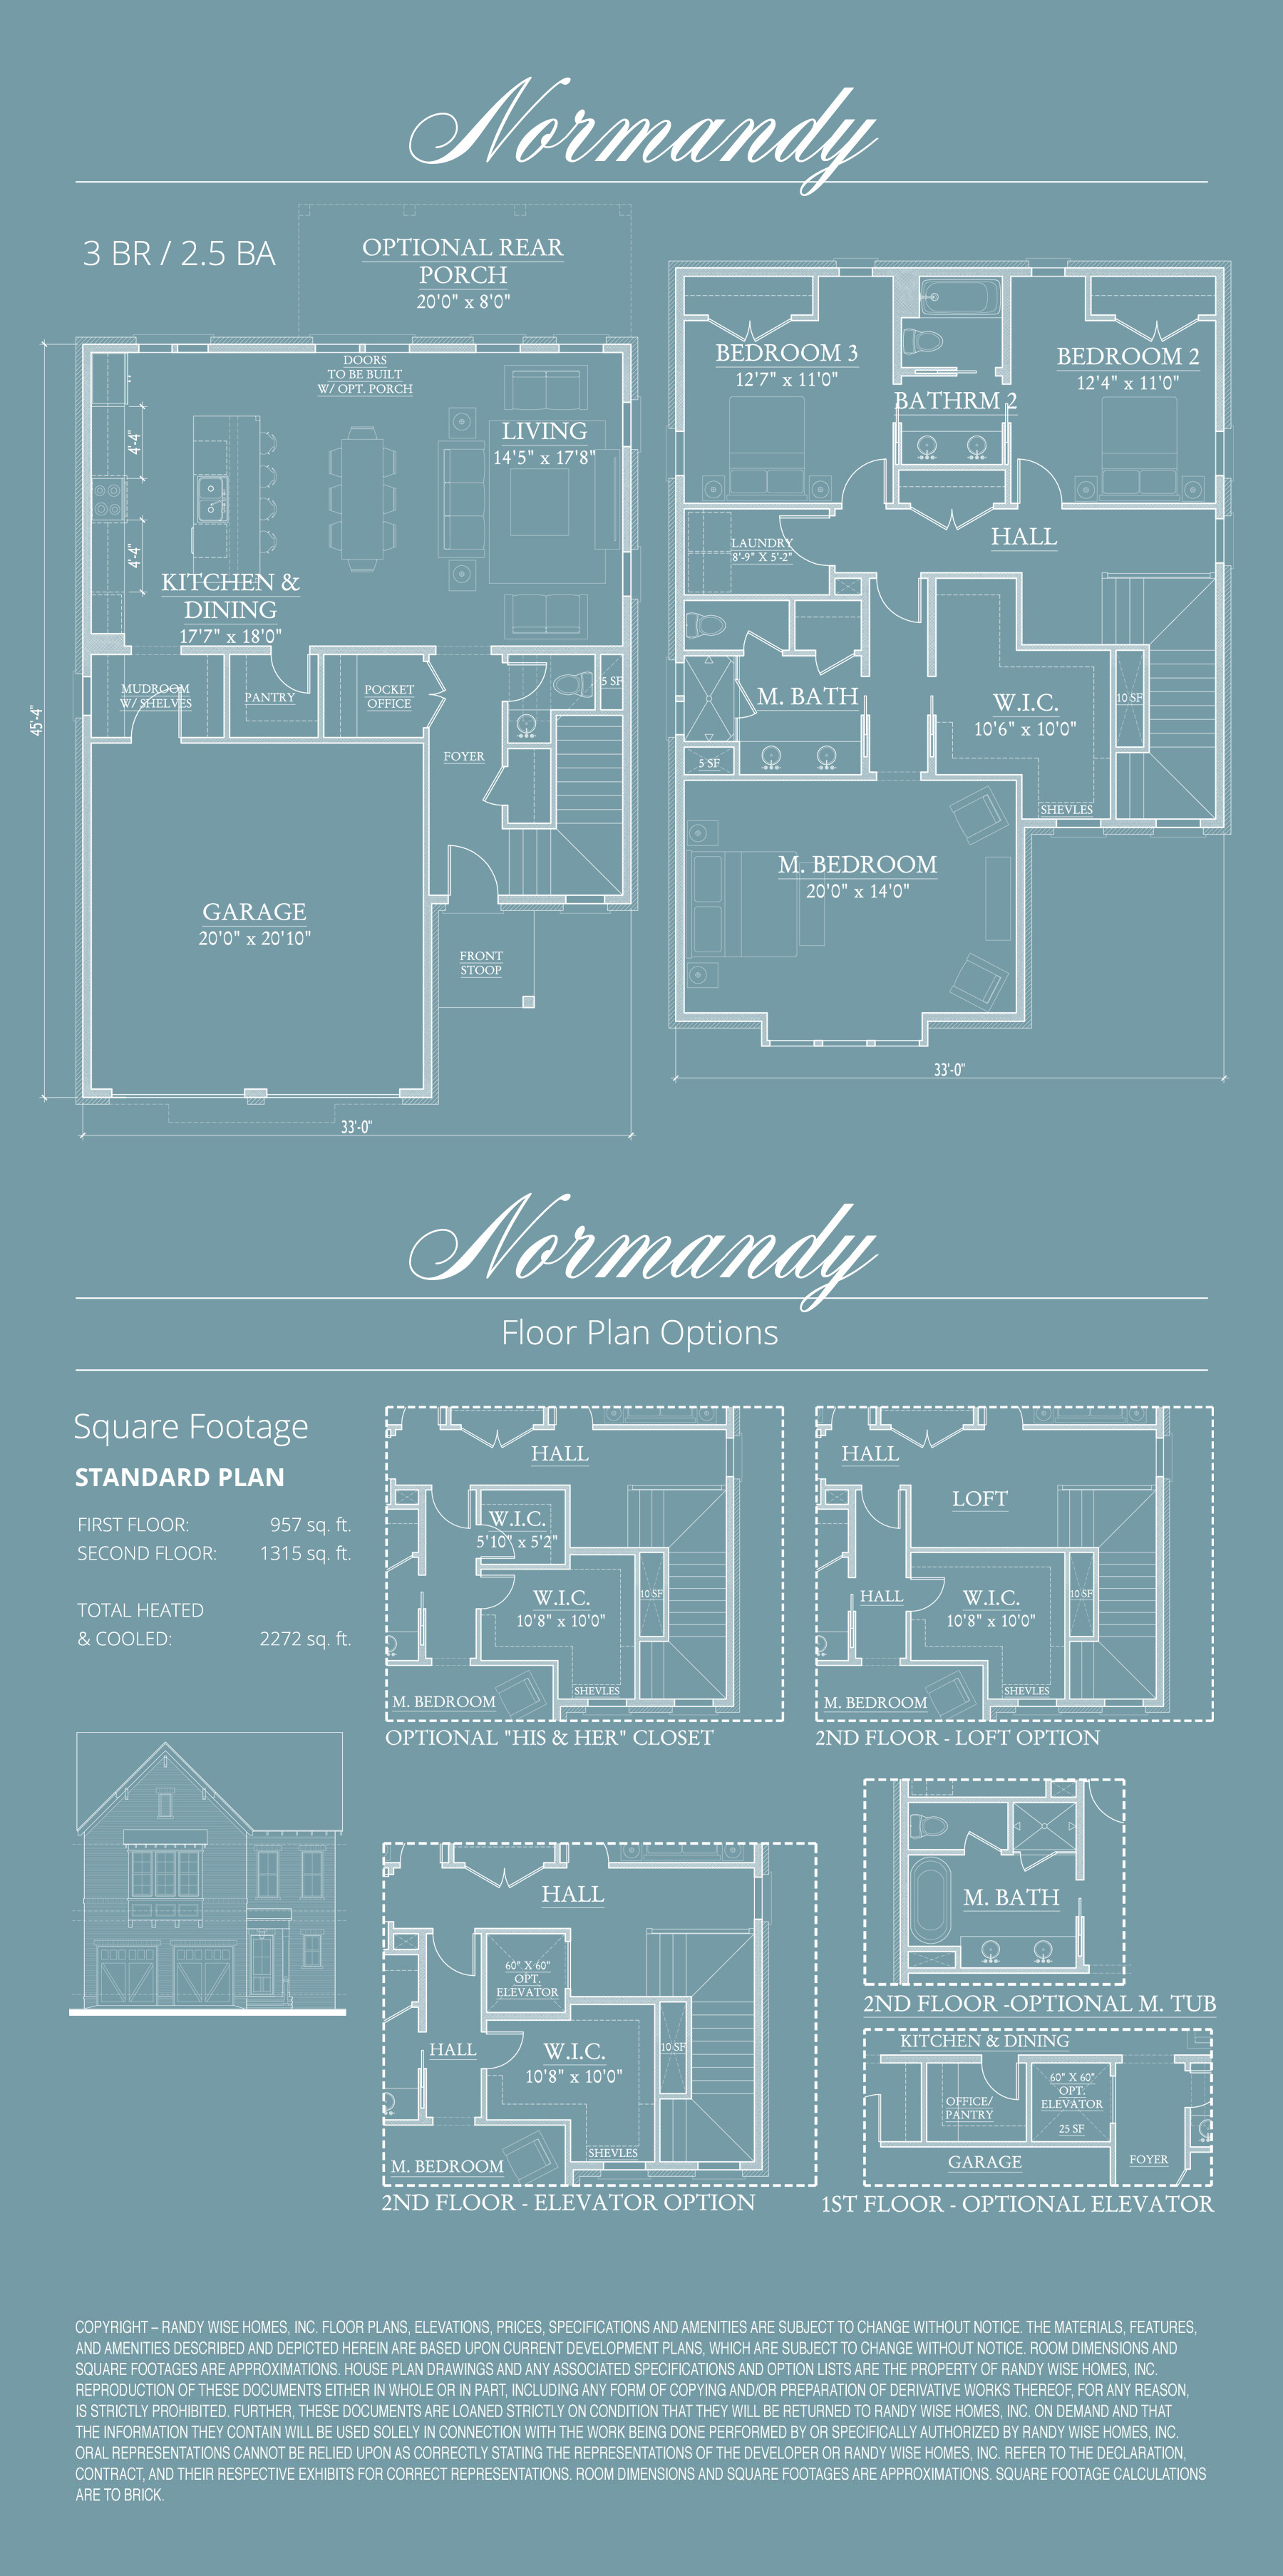 Normandy Floor Plans